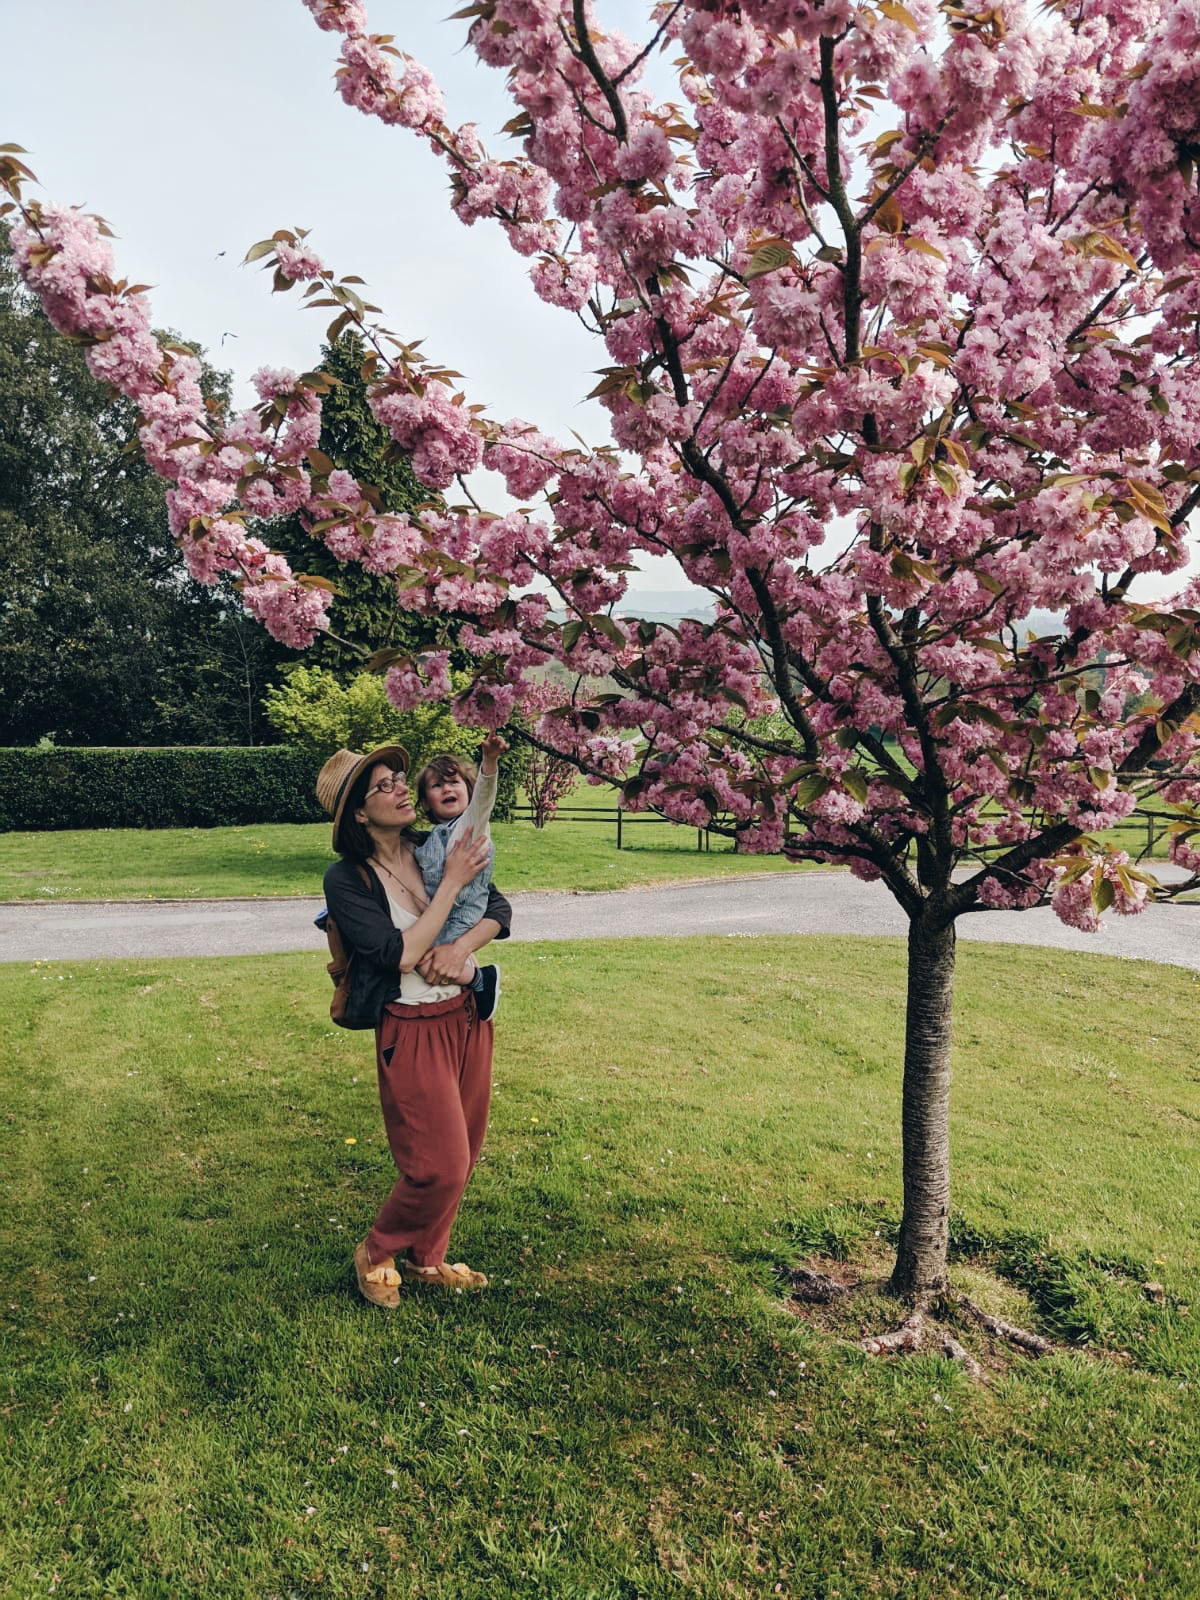 Women standing next to a cherry blossom tree. She has a toddler on her hip and they are both look up at the pink frothy blossom.